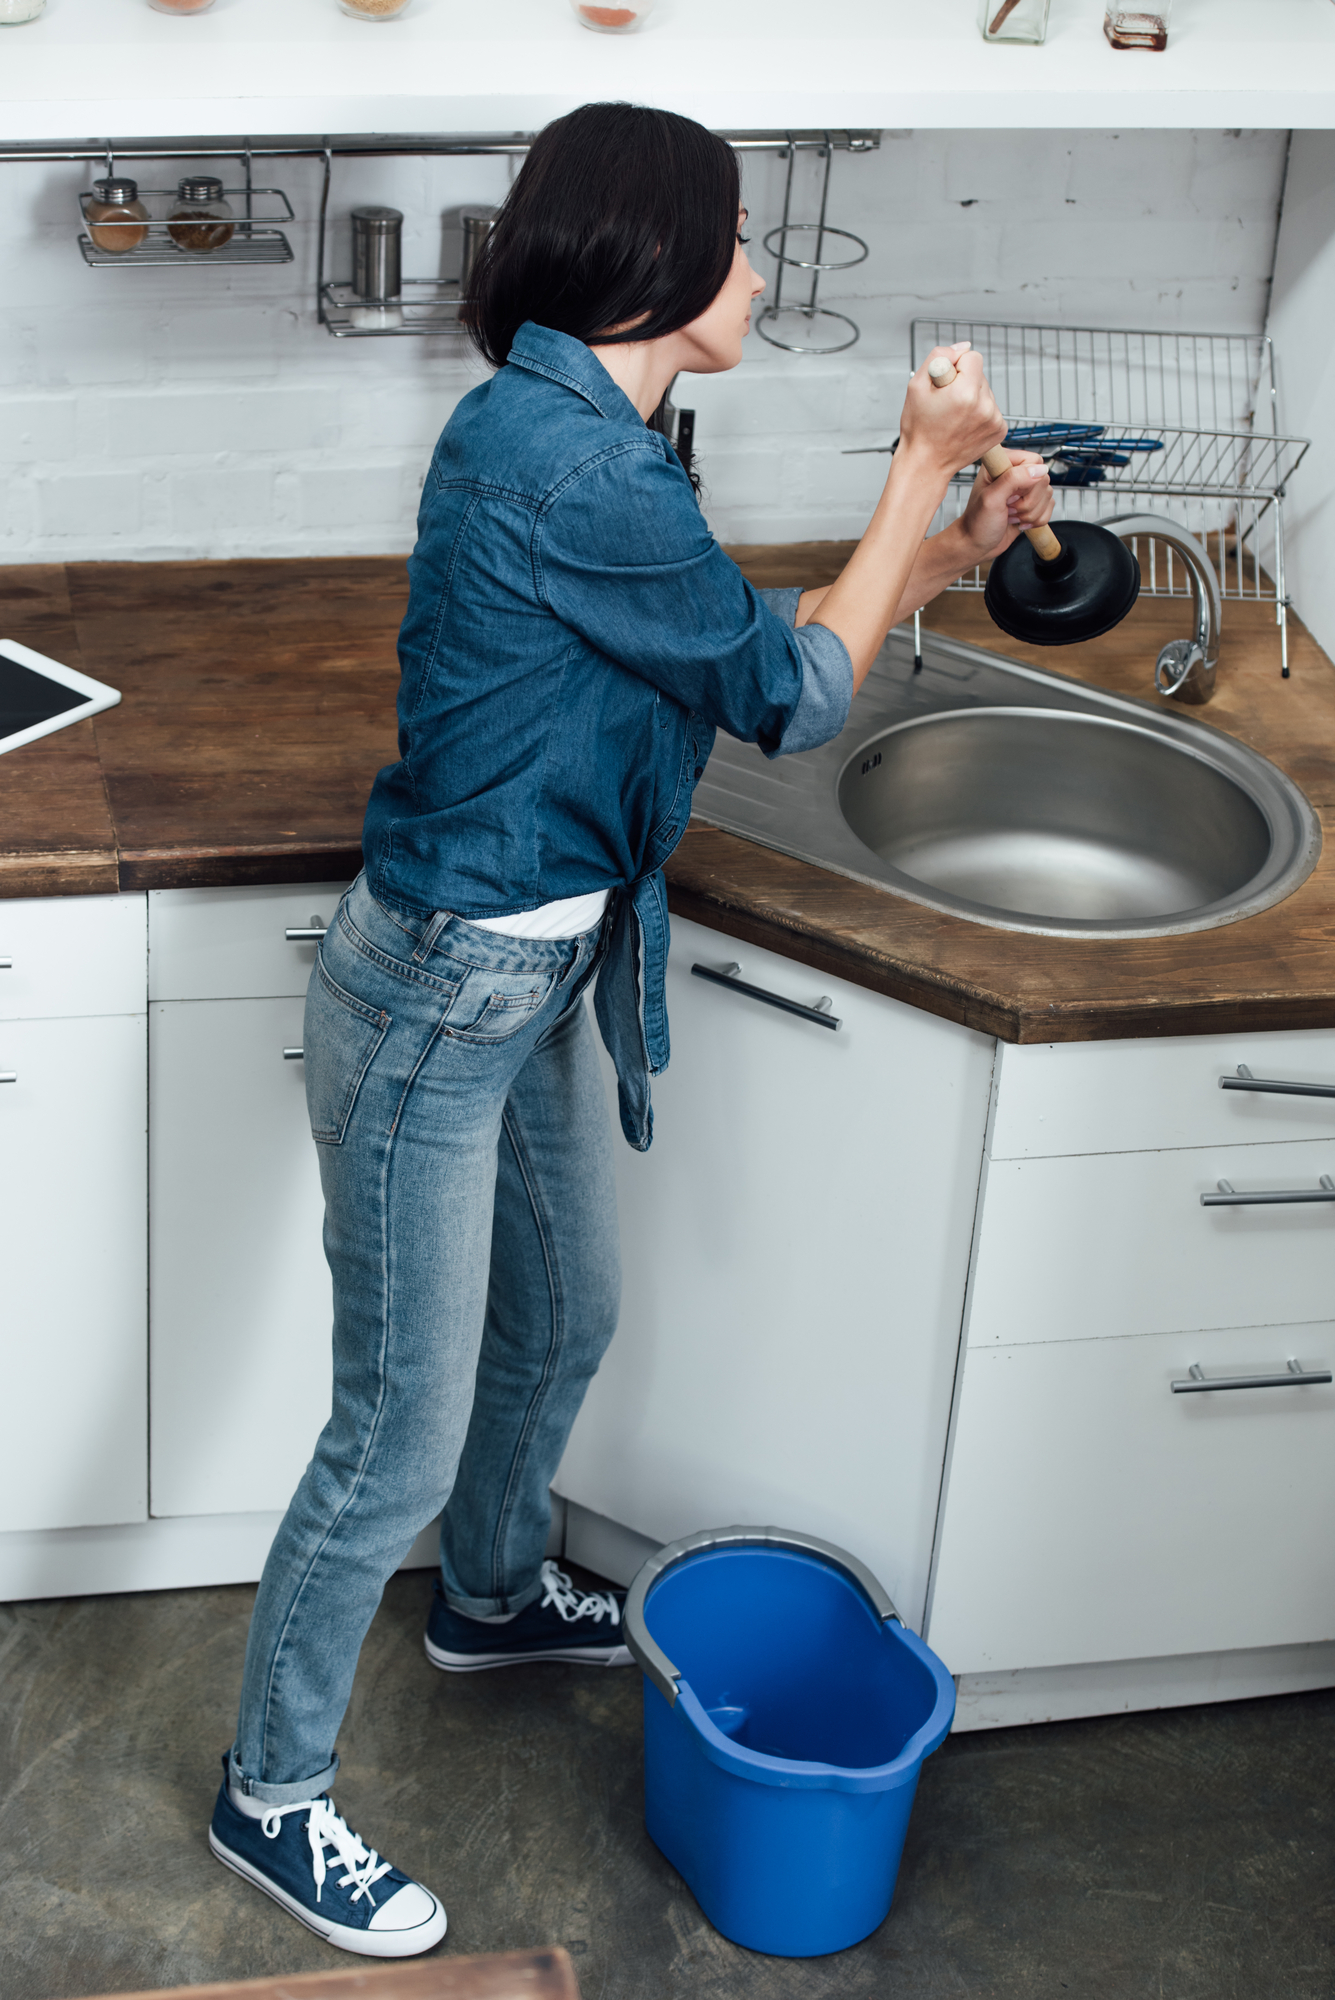 Woman in blue jeans using plunger in kitchen